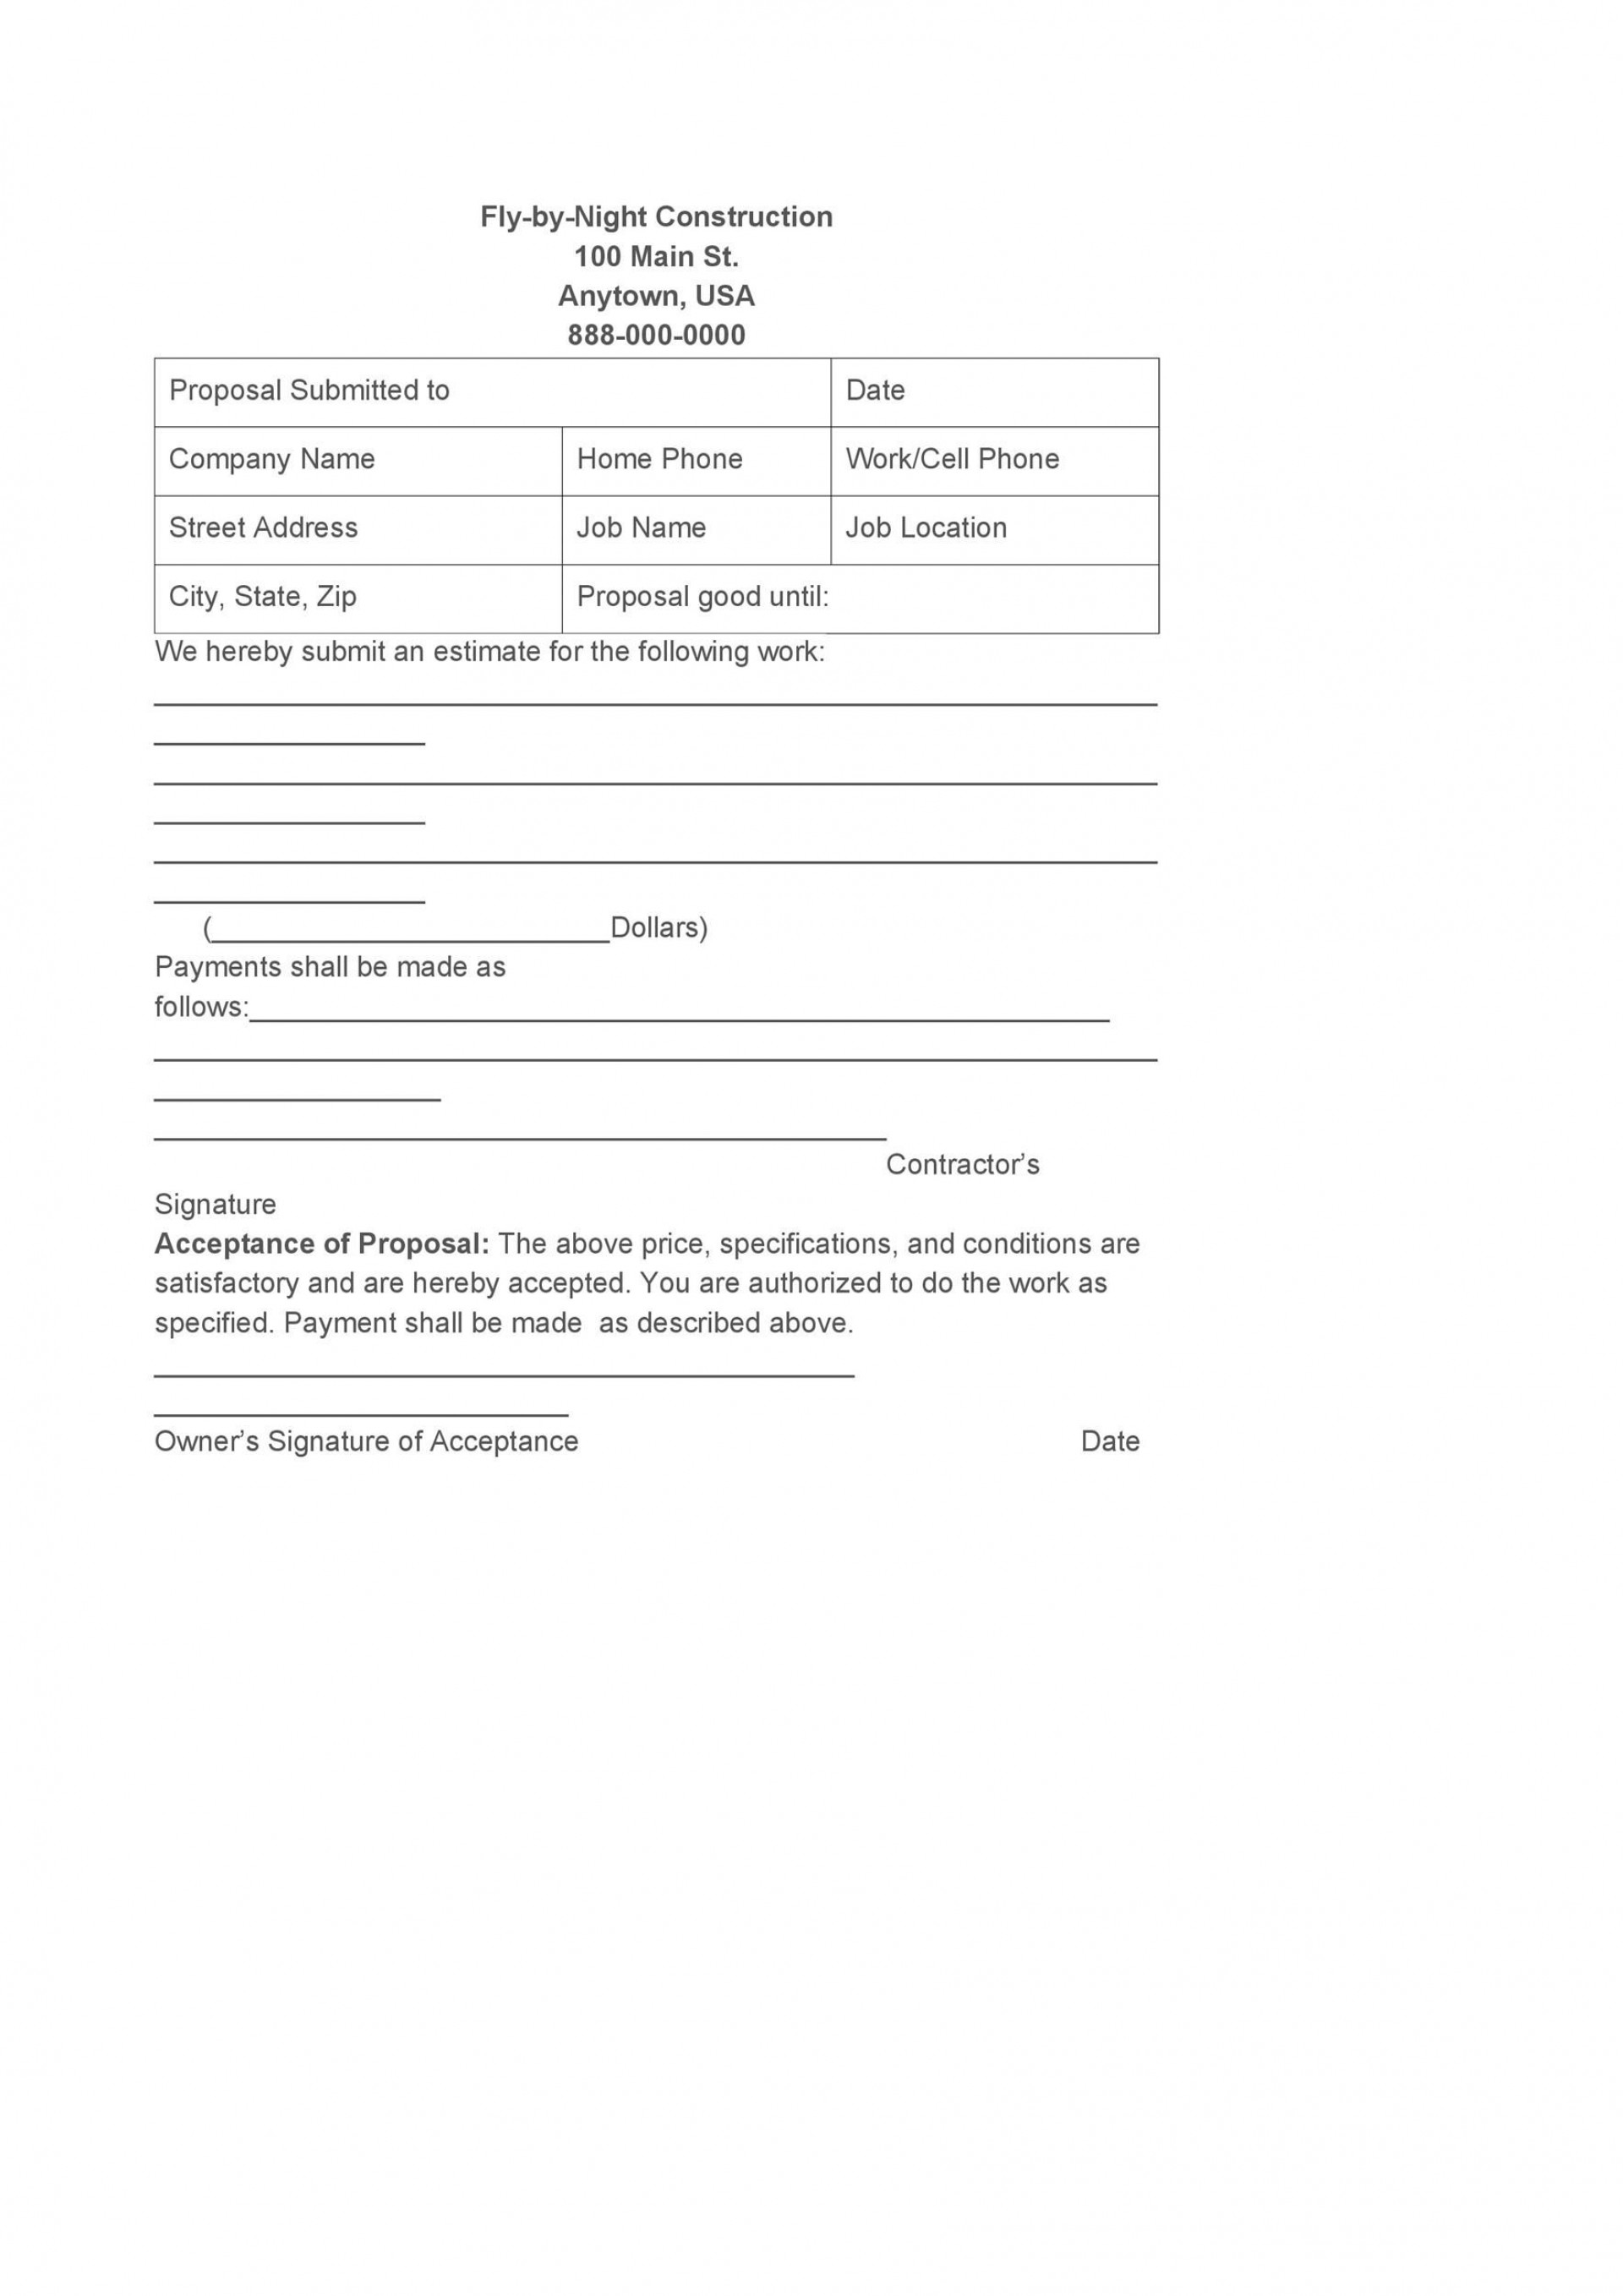 008 Impressive Construction Job Proposal Template Highest Quality  Example1920